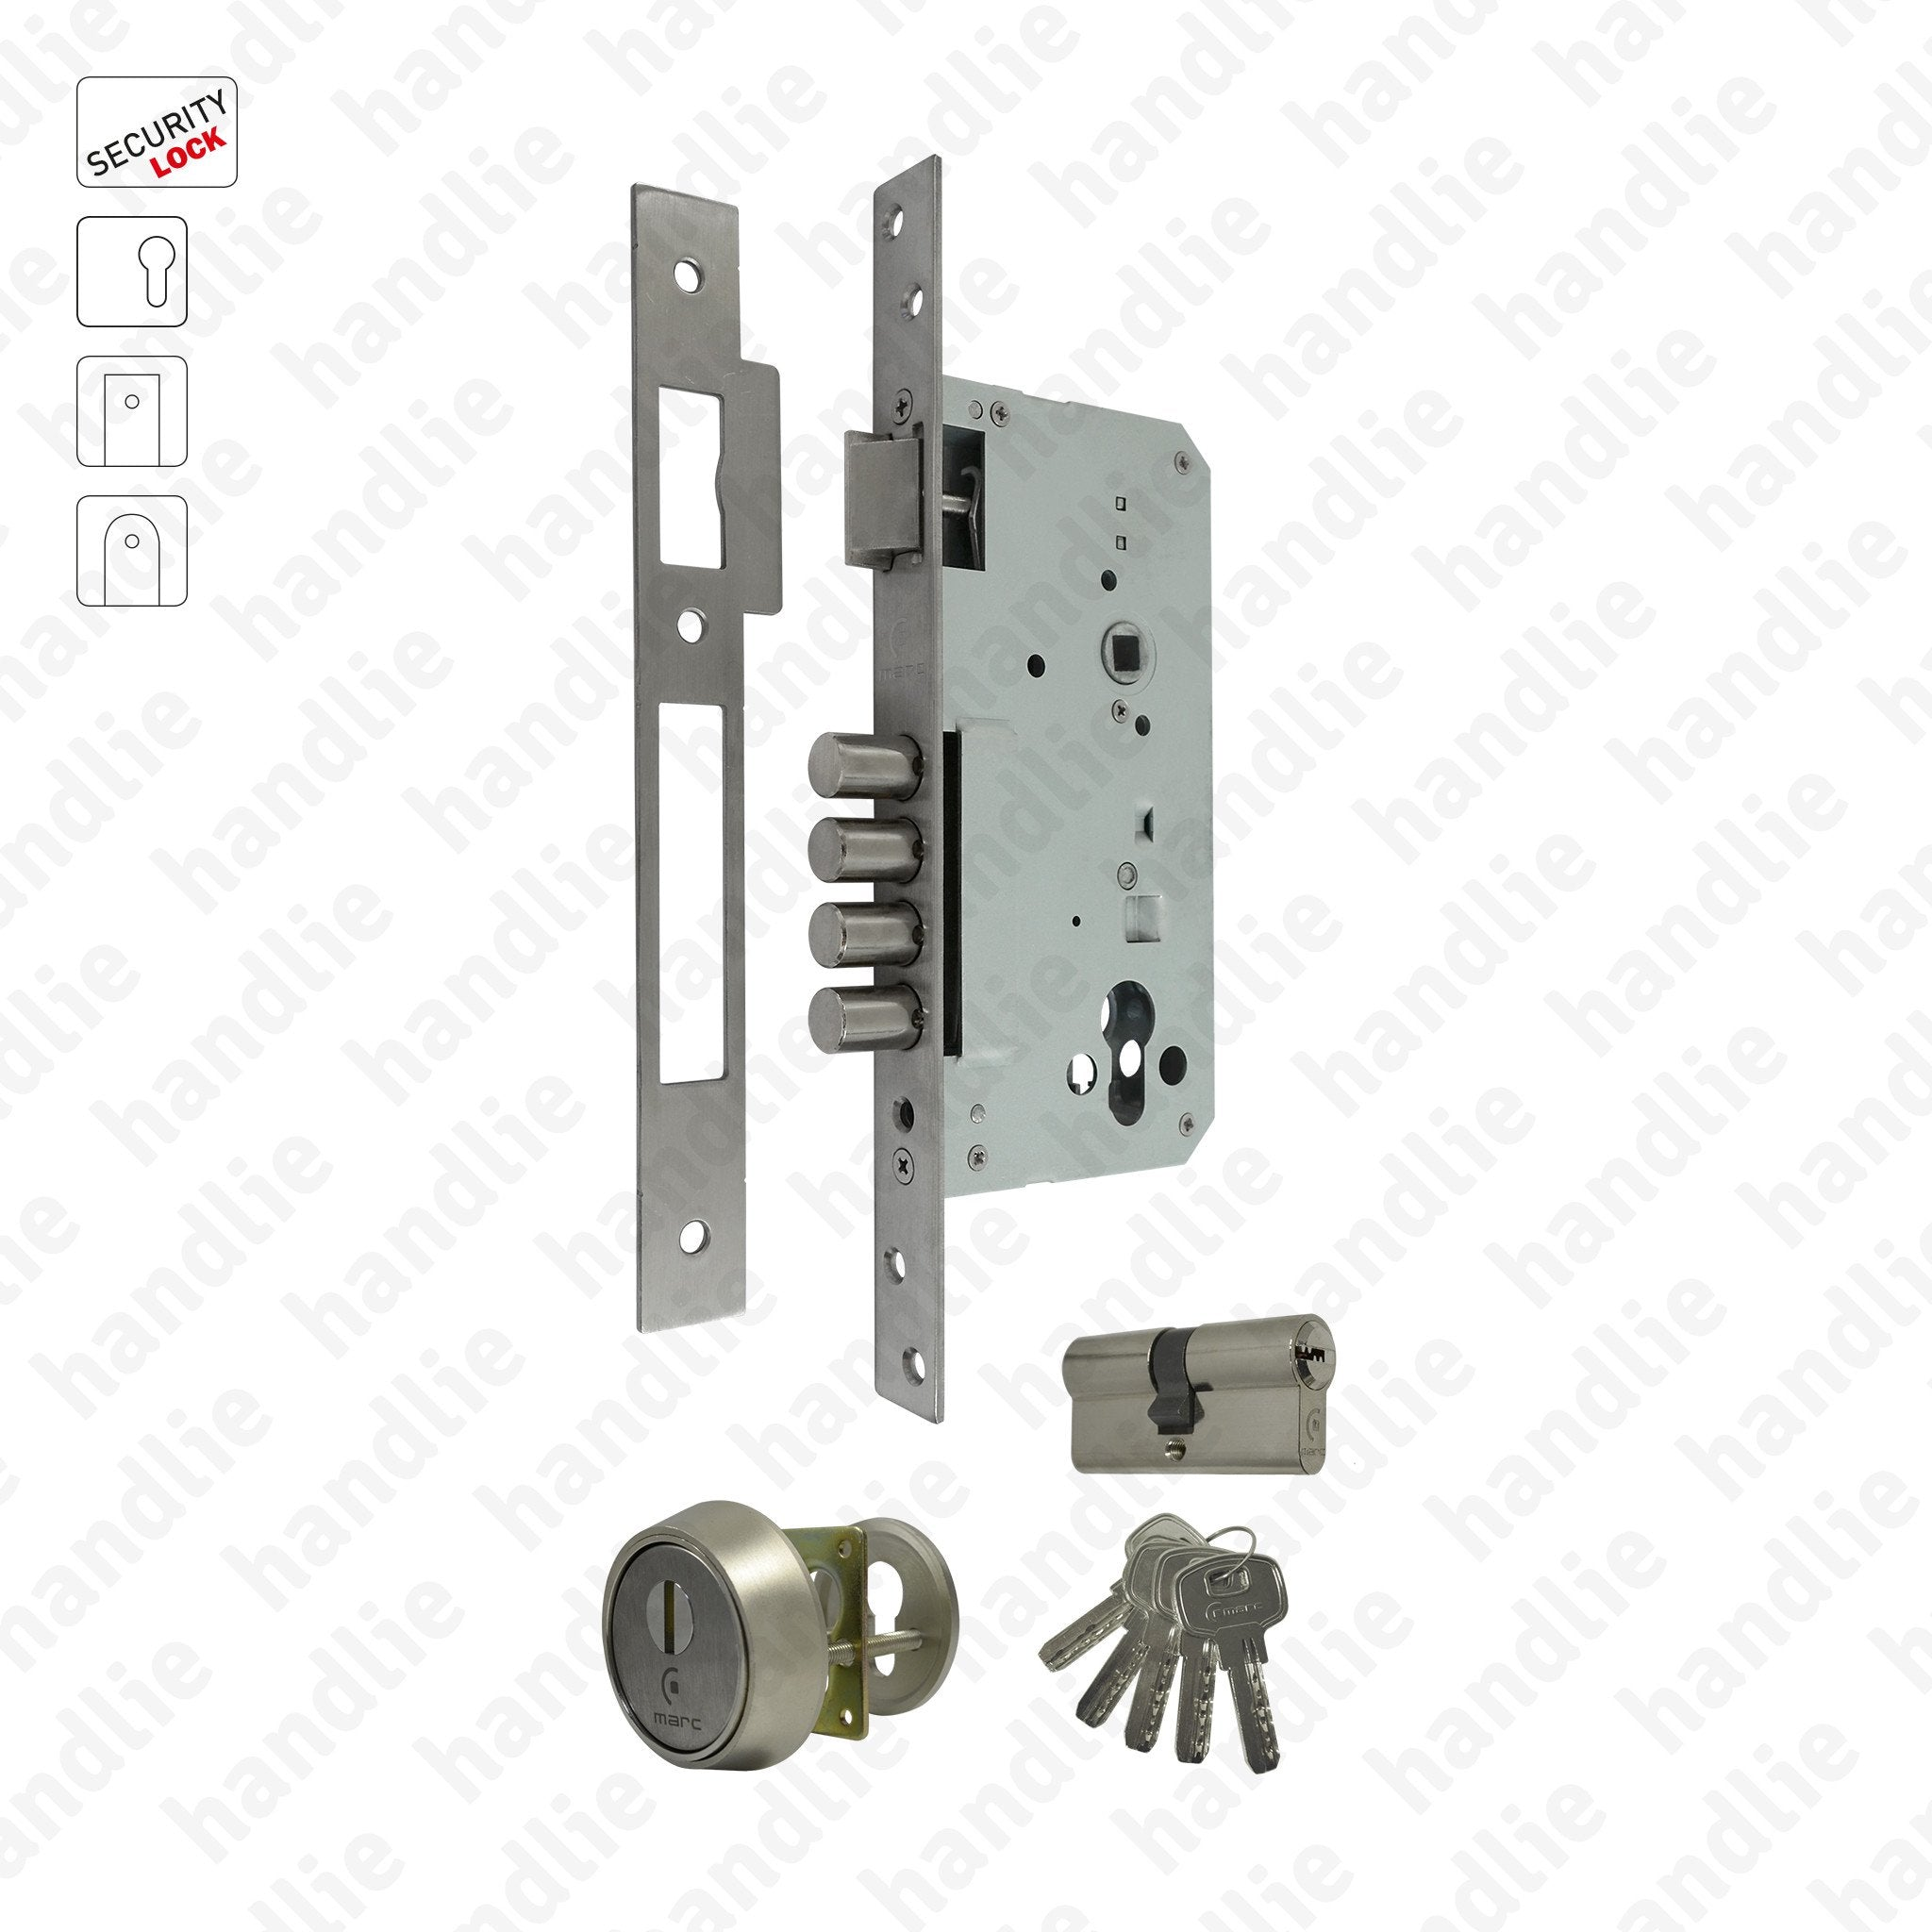 cylinder high security euro escutcheons complete with fixings brand new fast XXX